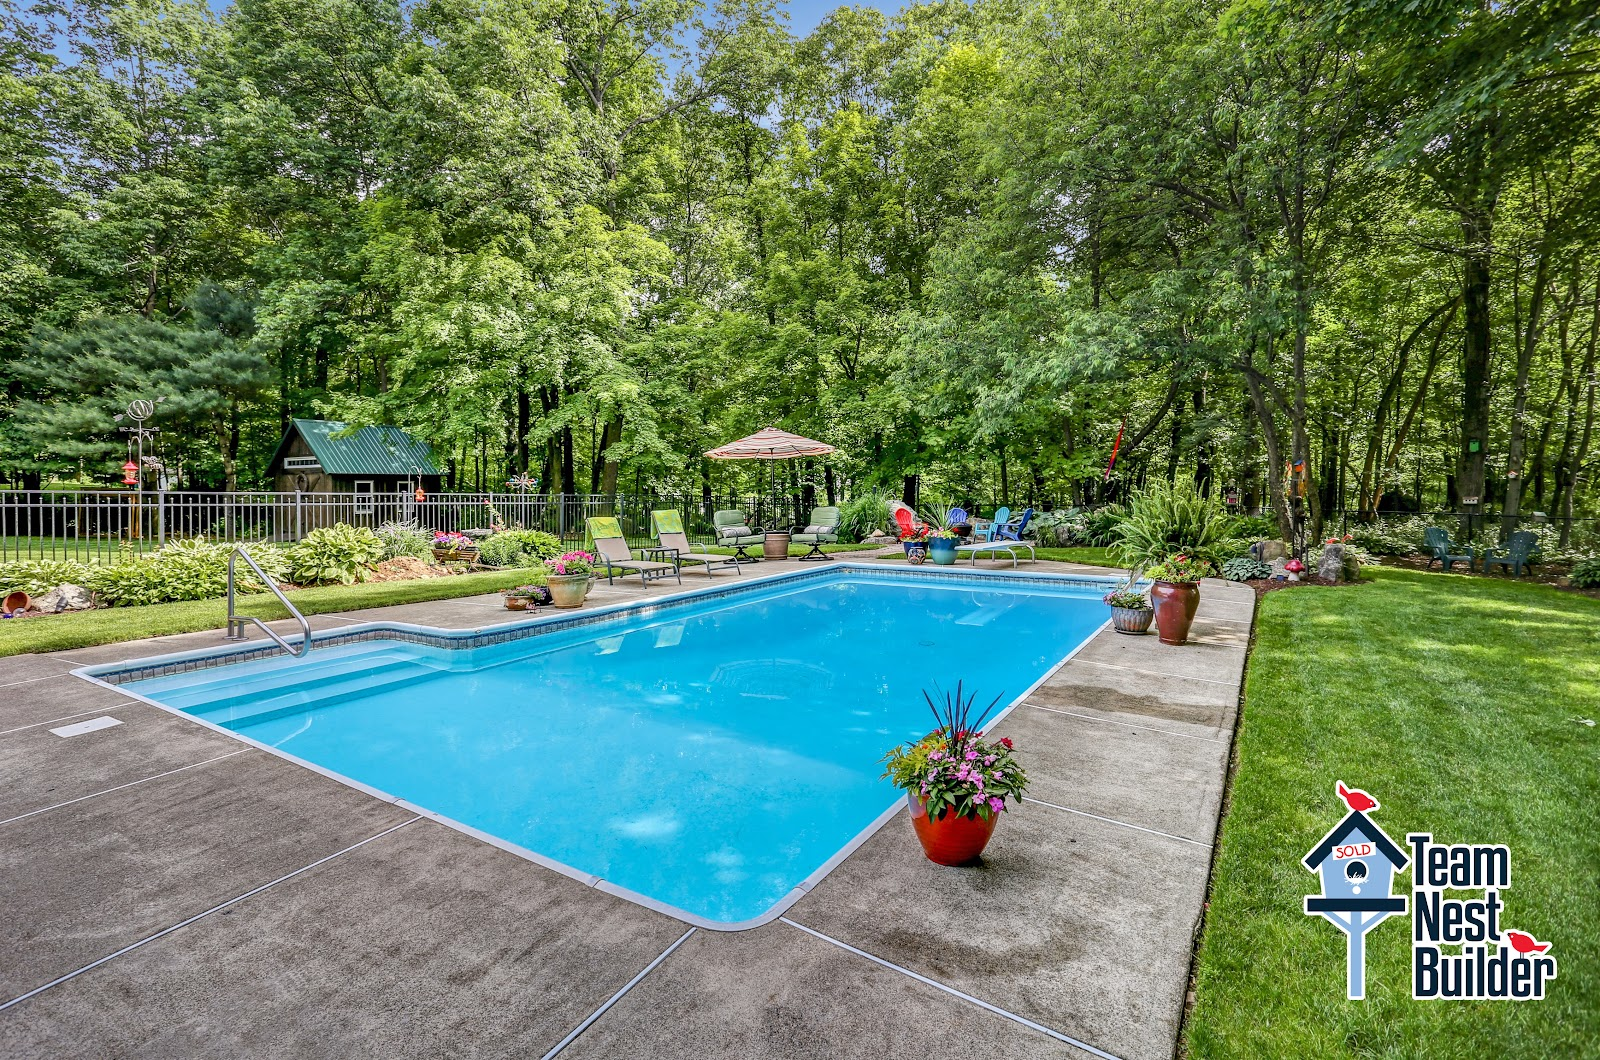 Heated pool with deck and fire pit area.